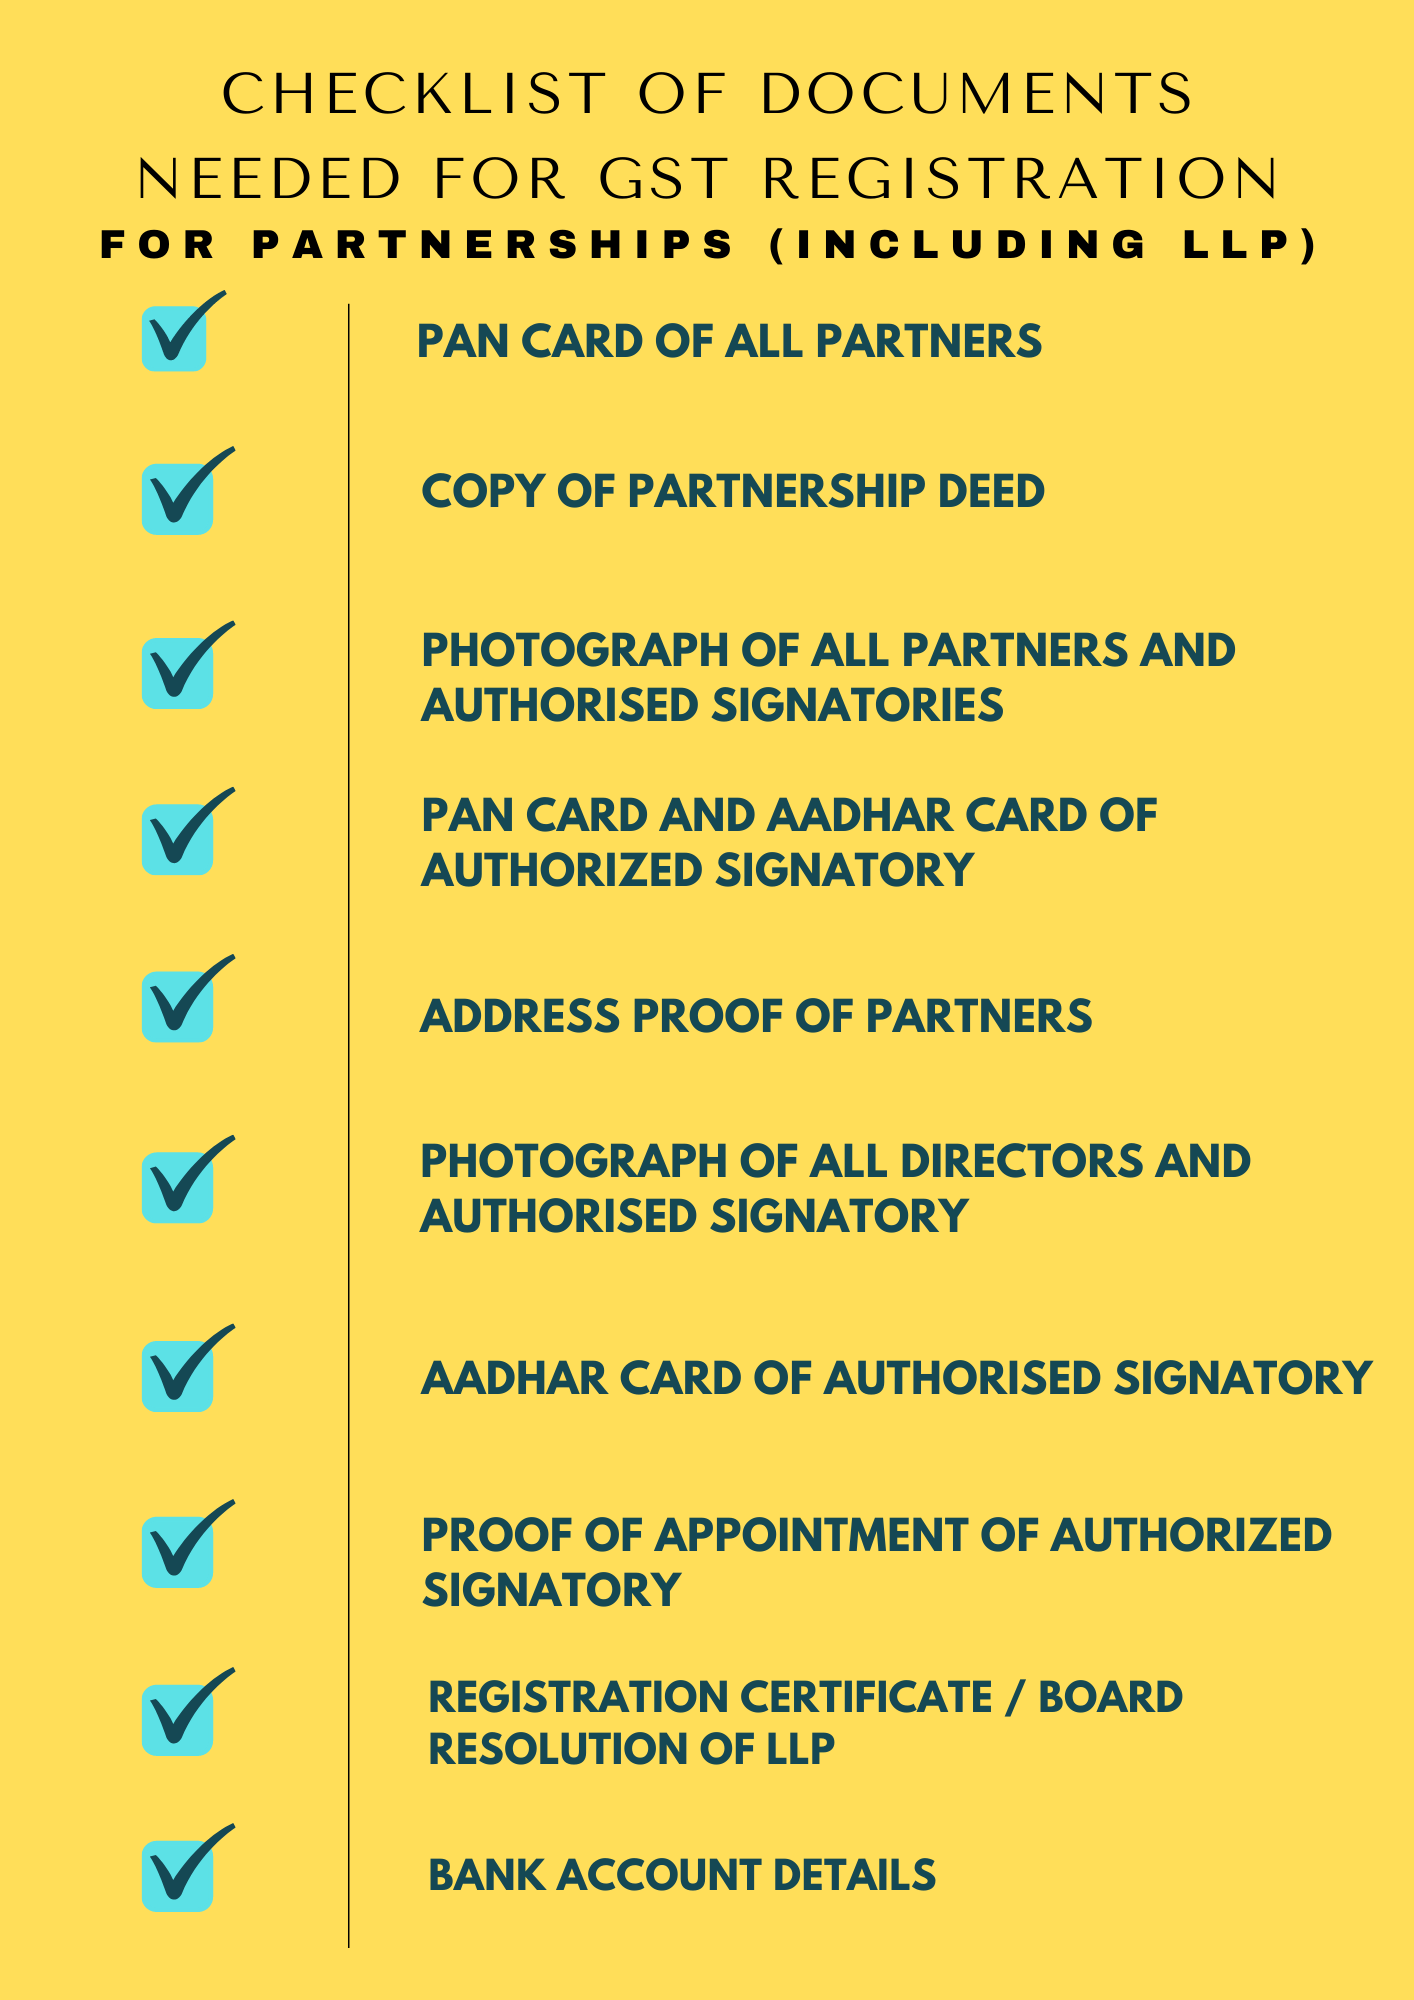 Documents needed for GST registration for partnerships (Including LLP)